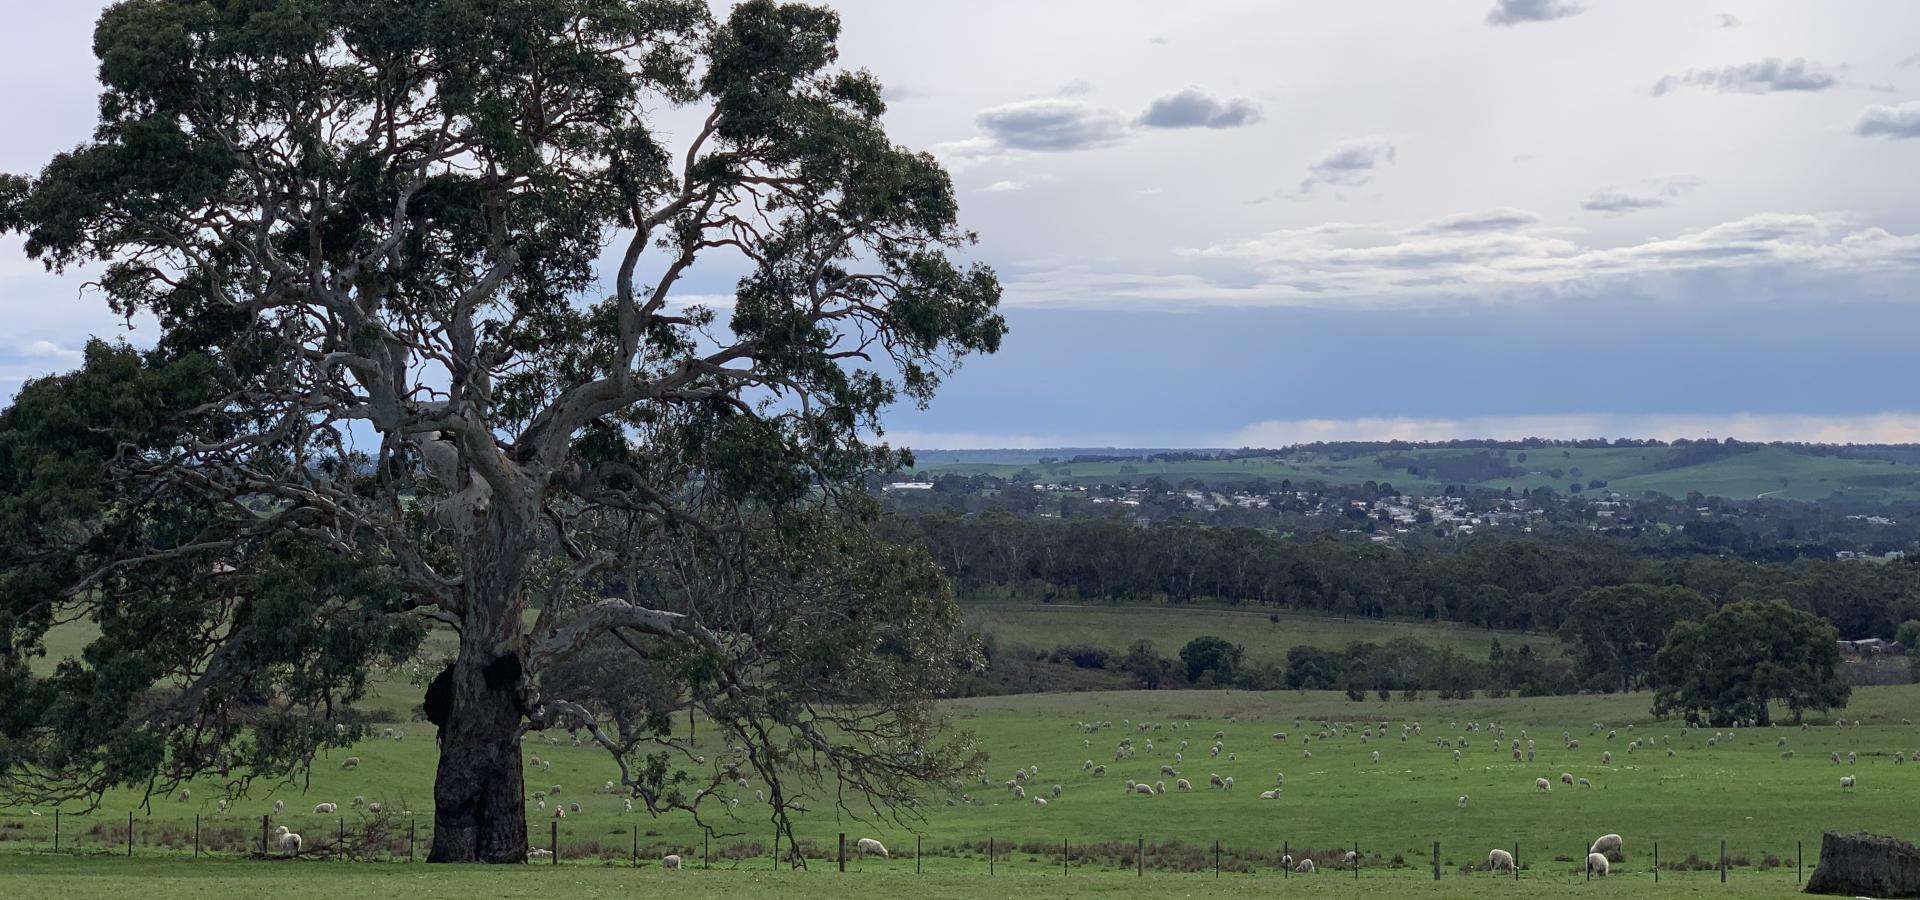 39 Kellys Road Casterton - 247 Acres - 11am 4th Oct 2019 @ Bahgallah Hall